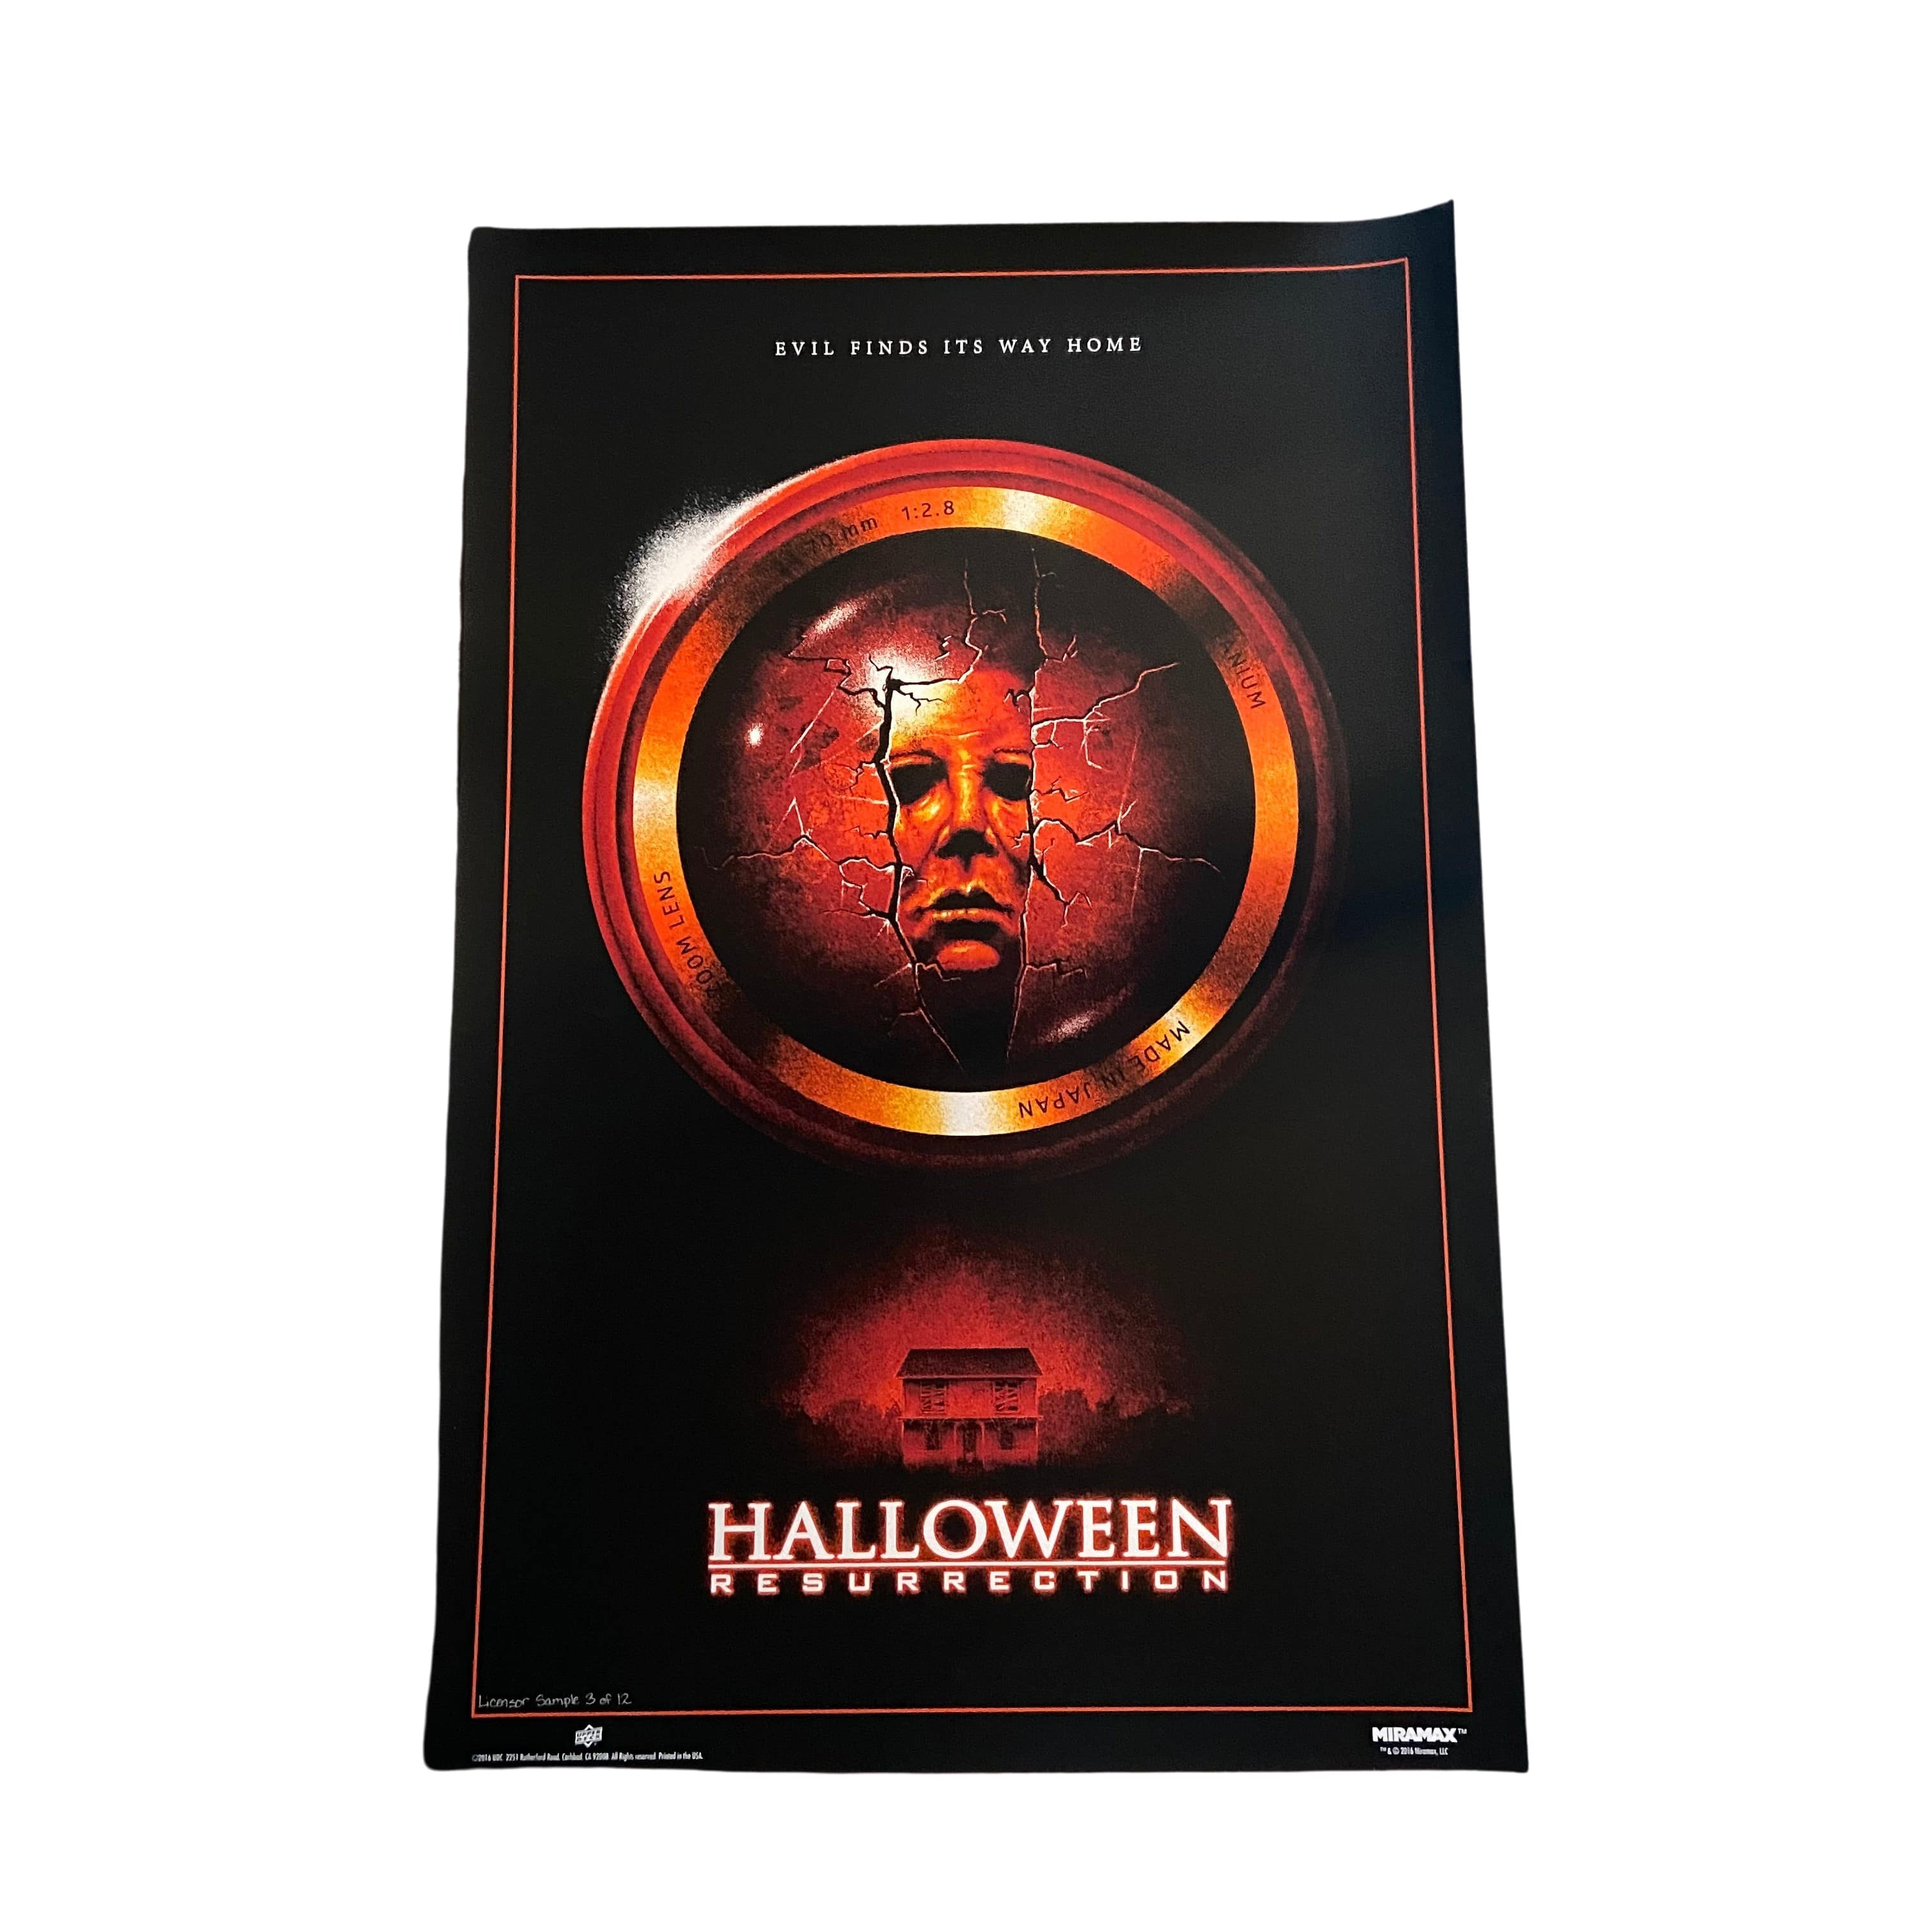 Halloween Resurrection Official 7 Run Limited Edition Movie Posters (A)